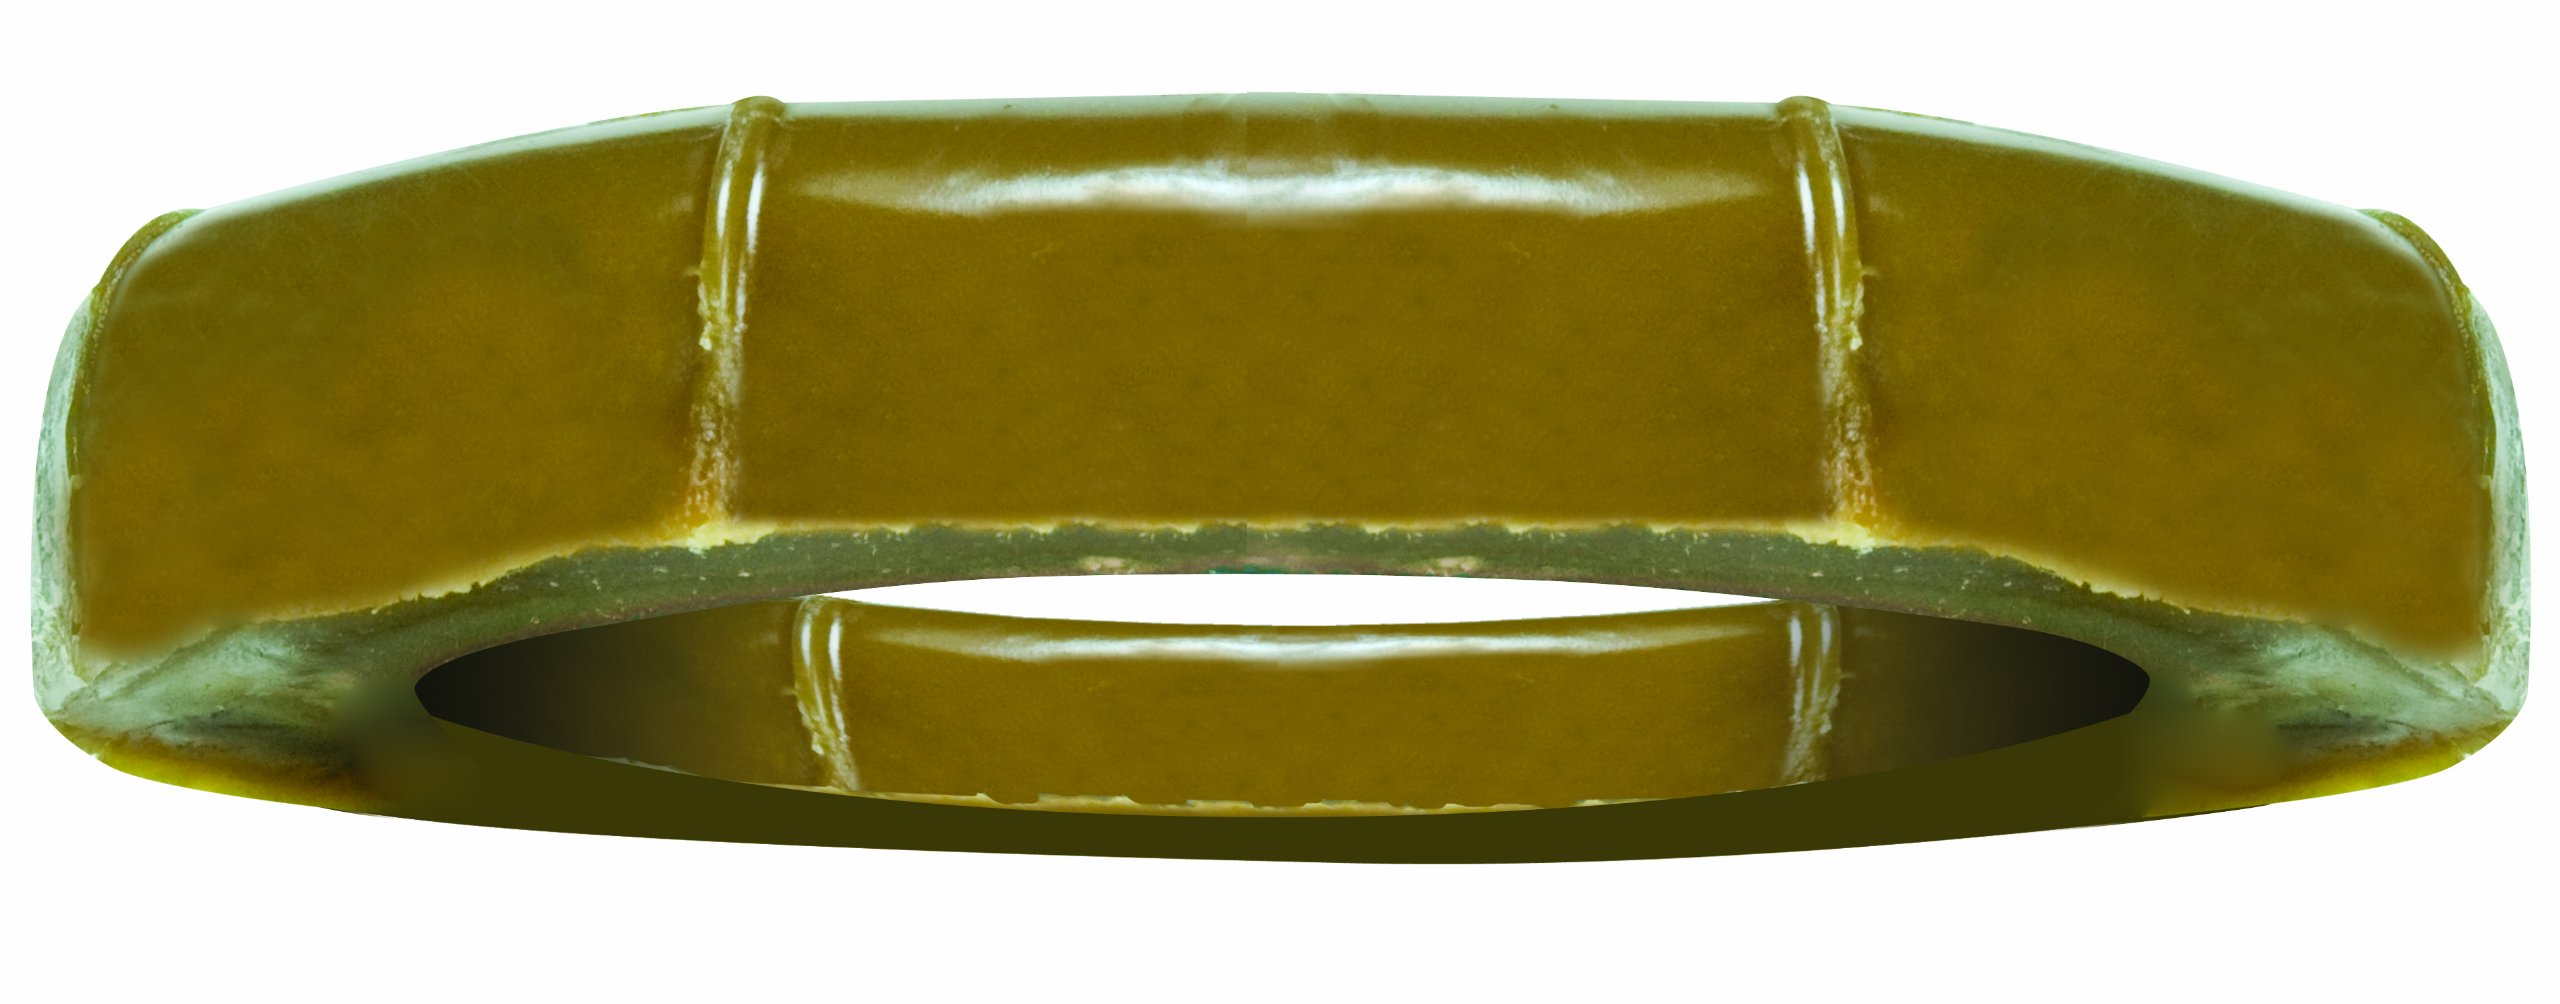 Fluidmaster 7510 Standard Wax Toilet Bowl Ring for 3-Inch and 4-Inch Waste Lines by Fluidmaster (Image #1)